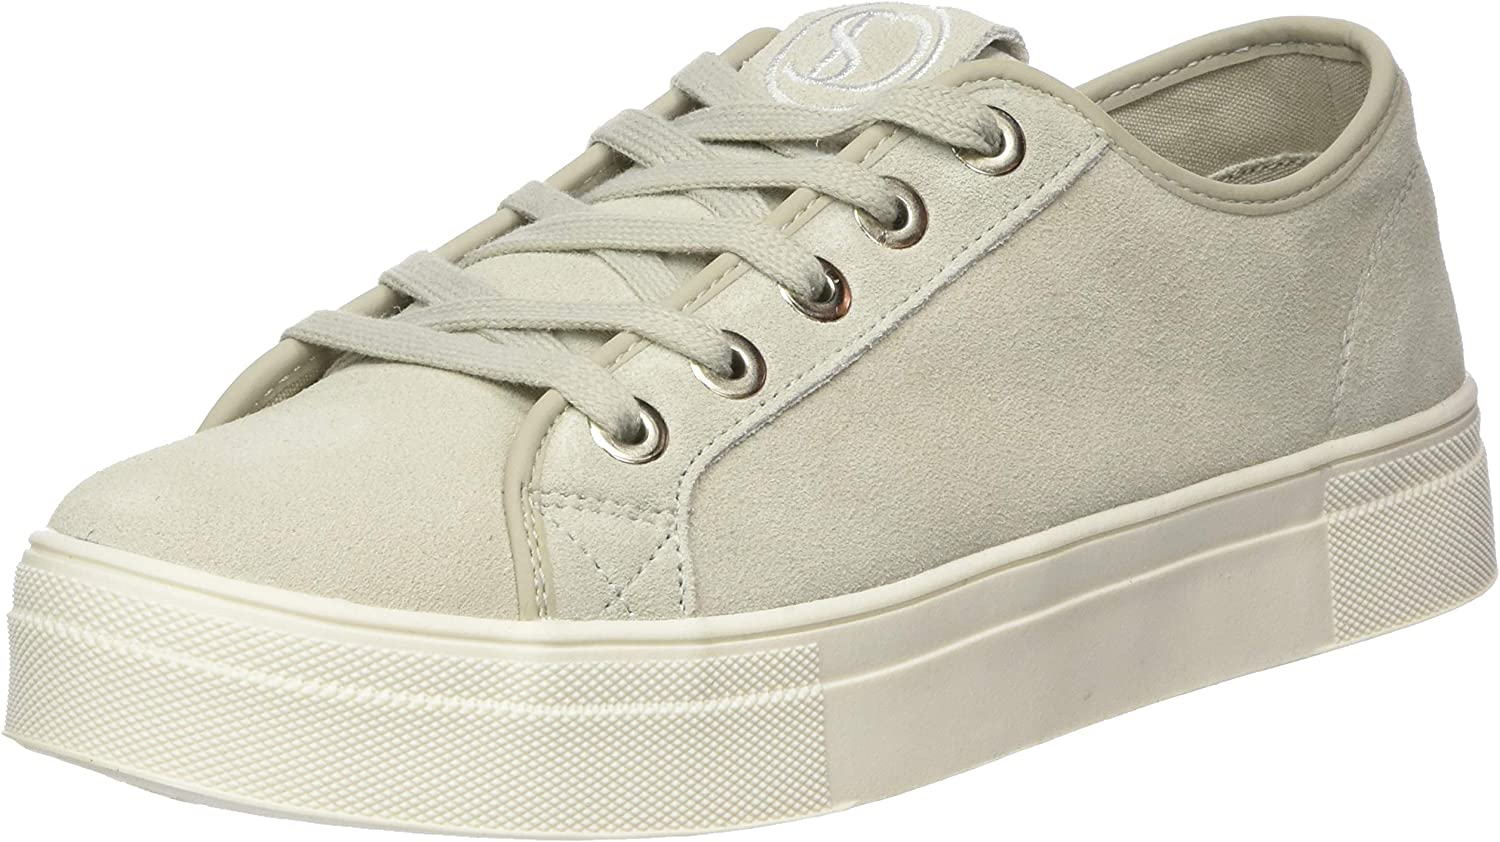 Superdry Women's Milwaukee Mall Sneakers Ranking TOP11 Low-Top